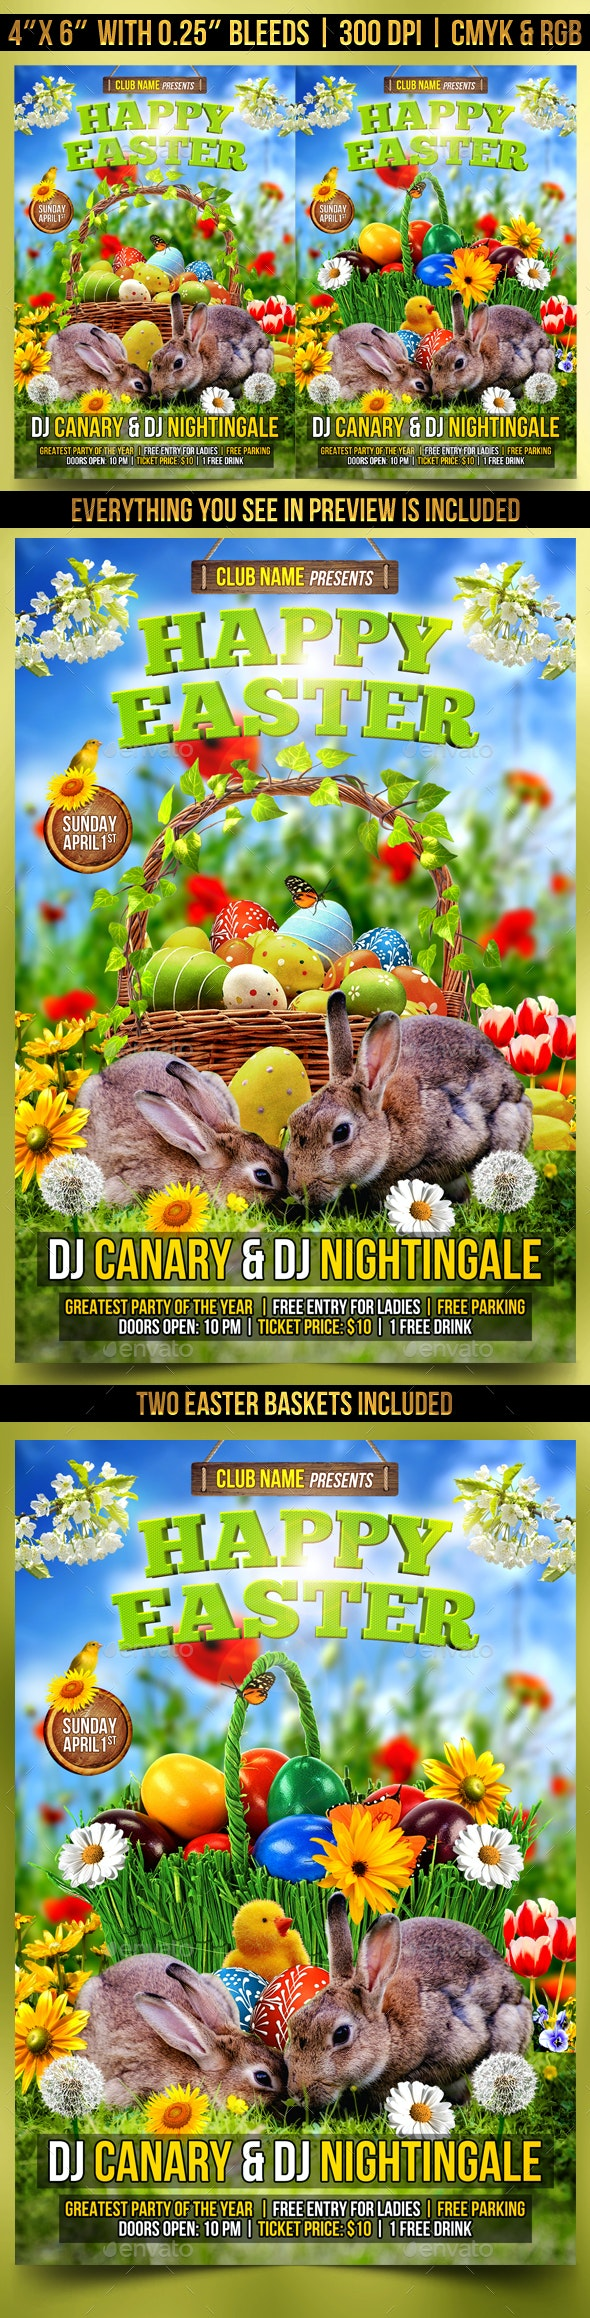 Happy Easter Flyer Template - Clubs & Parties Events